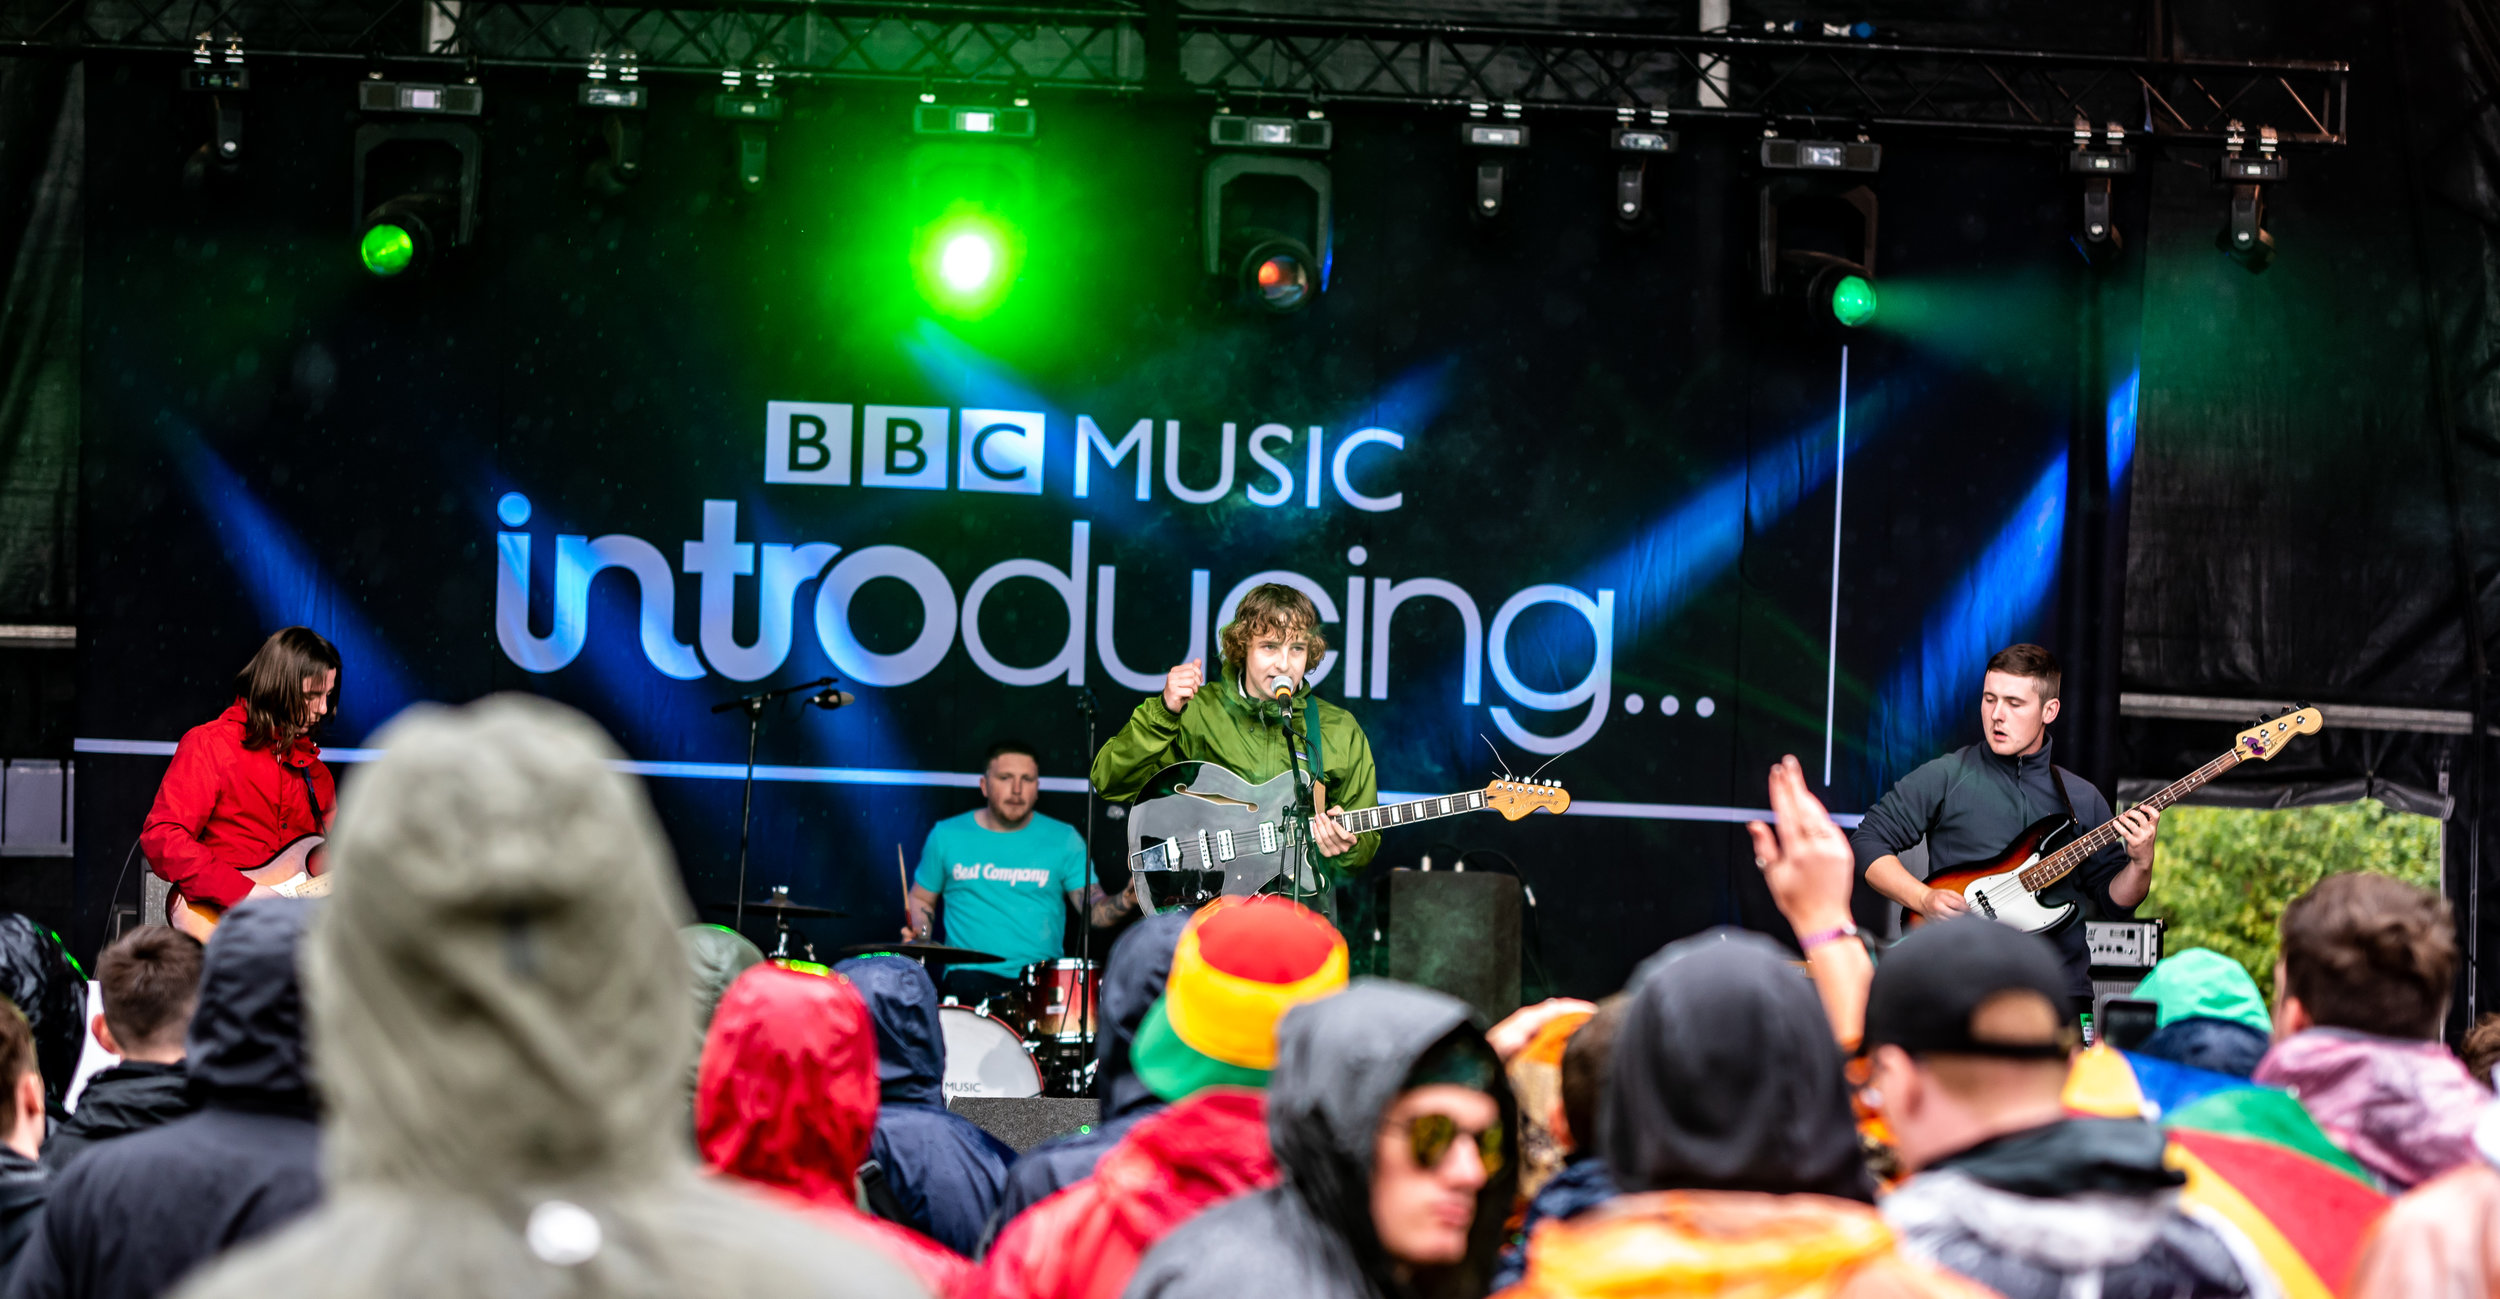 THE SNUTS PERFORMING ON THE BBC INTRODUCING STAGE AT LEEDS FESTIVAL 2018 - 26.08.2018  PICTURE BY: CALUM BUCHAN PHOTOGRAPHY